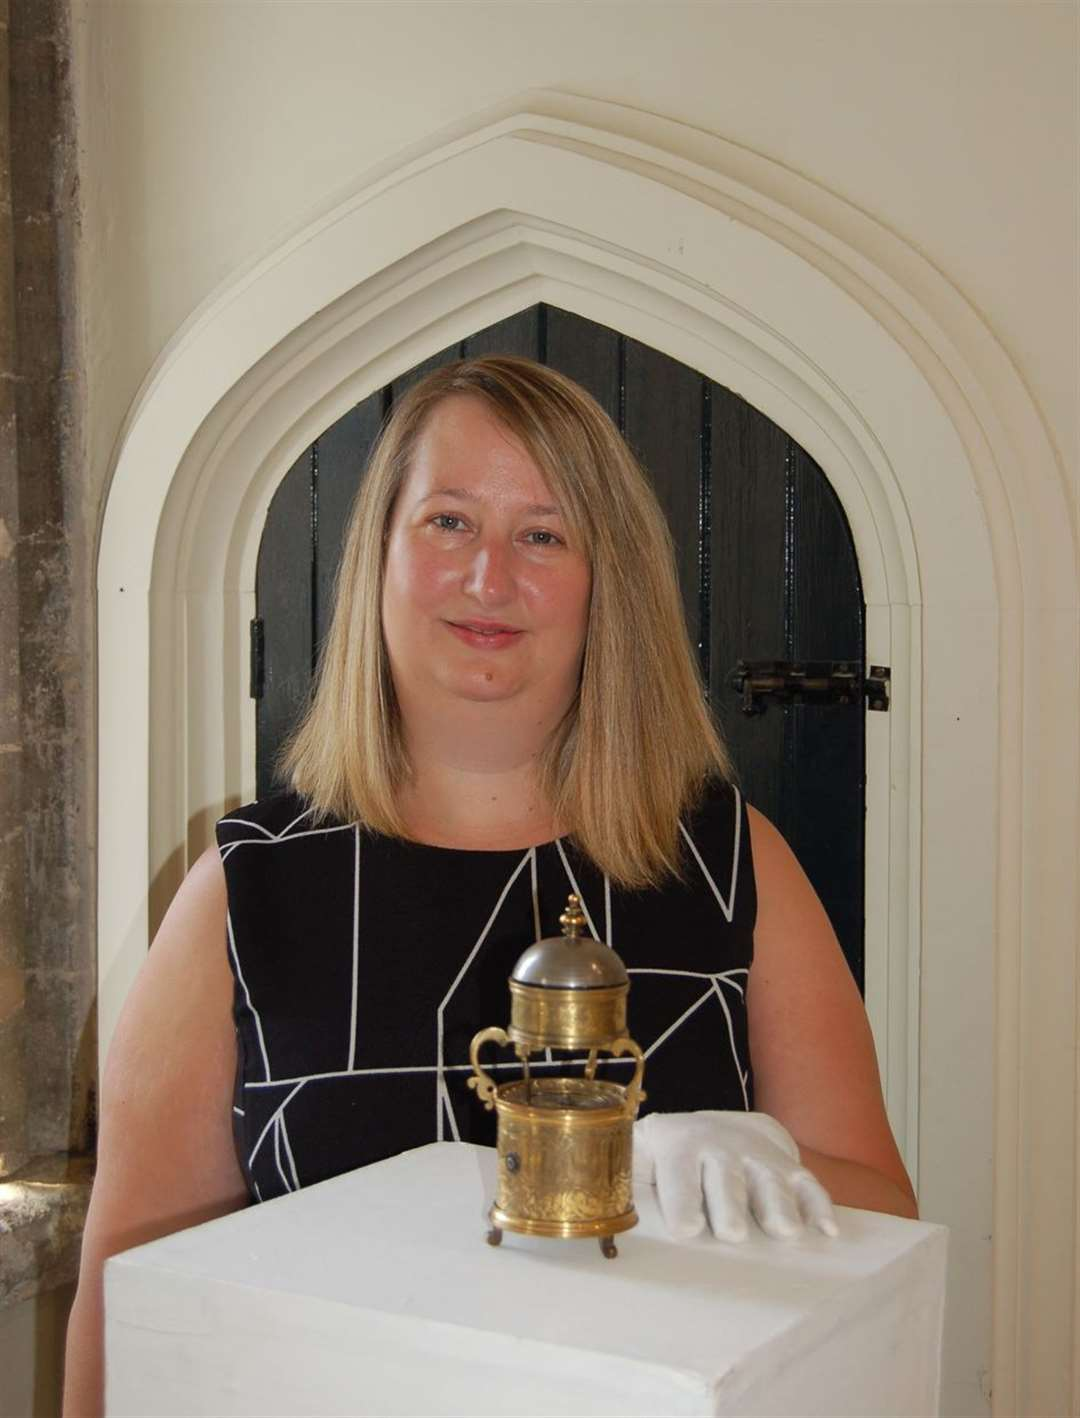 Cllr Joanna Rayner with the historic Drum Clock at Moyse's Hall Museum in Bury St Edmunds